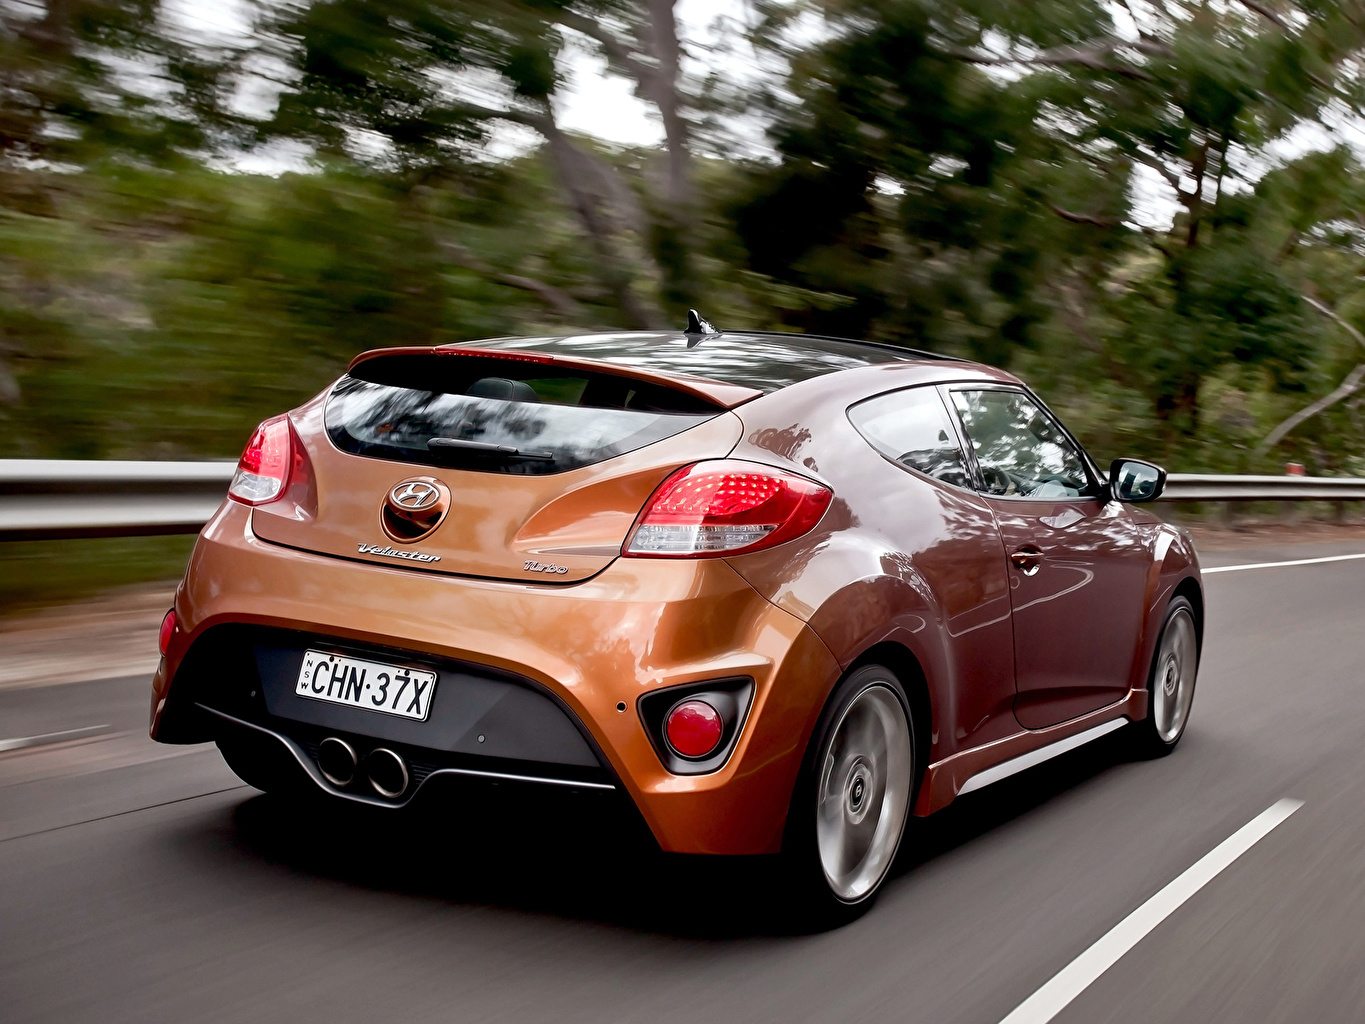 Desktop Wallpapers Hyundai Veloster Turbo Back view Headlights automobile Cars auto